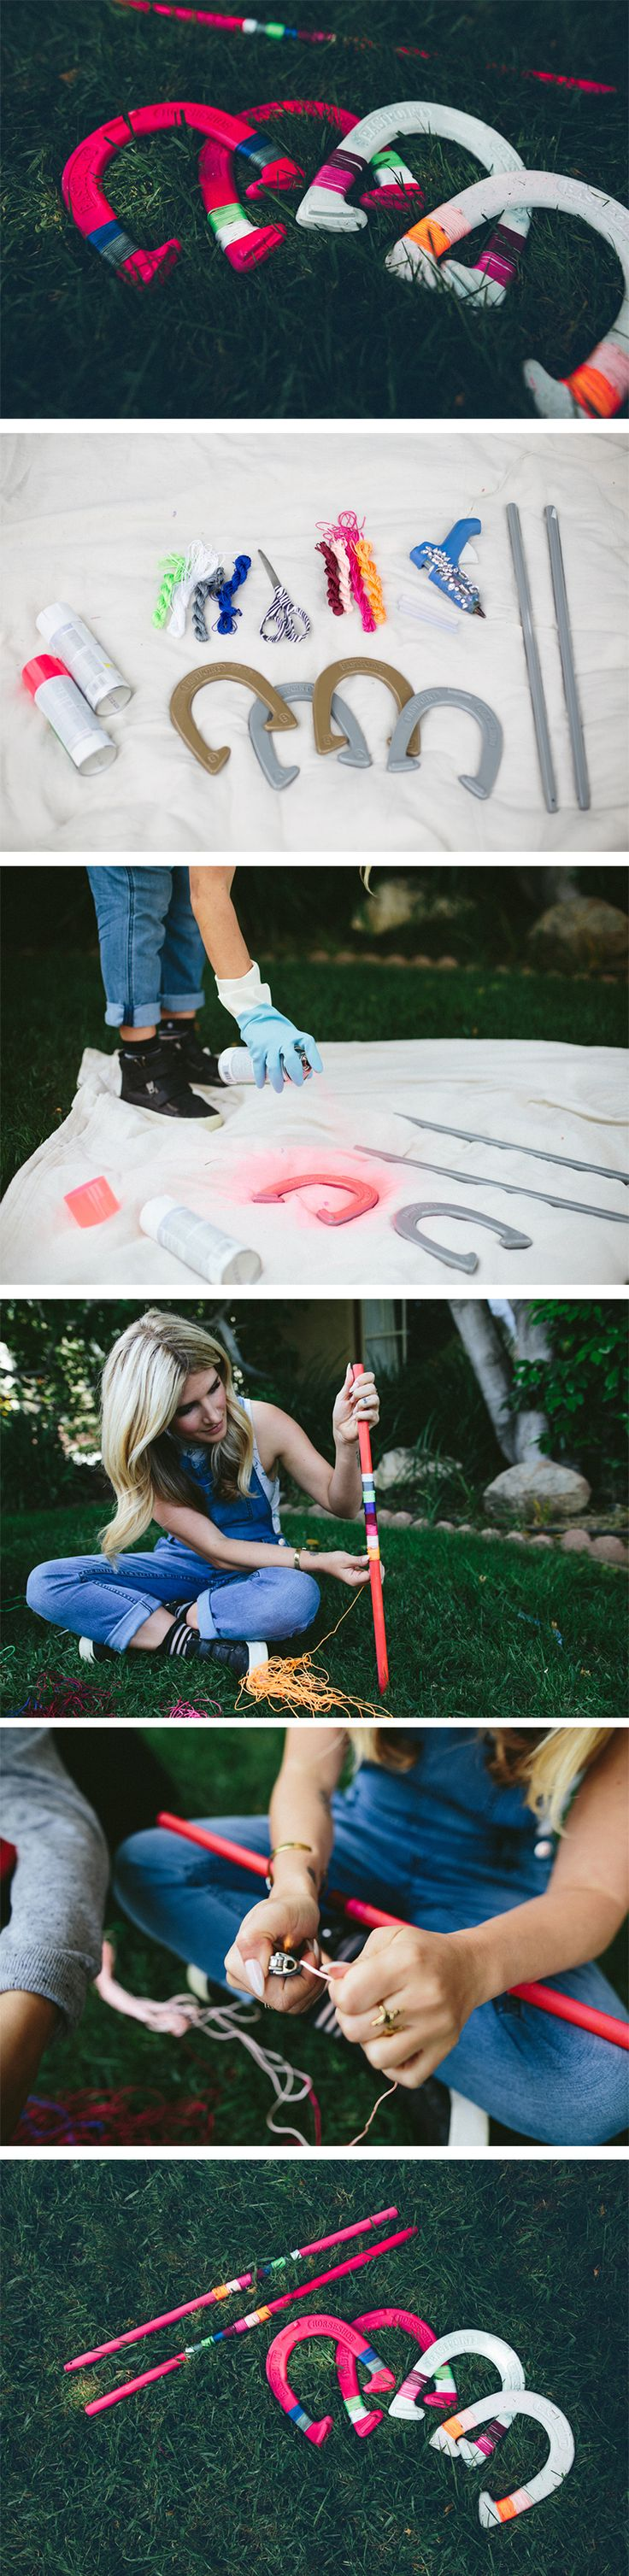 DIY Horseshoe Set | Summer is yours for the playing with this painted and twine-wrapped horseshoe game! Beautiful for your lawn, or to hang as some home decor!